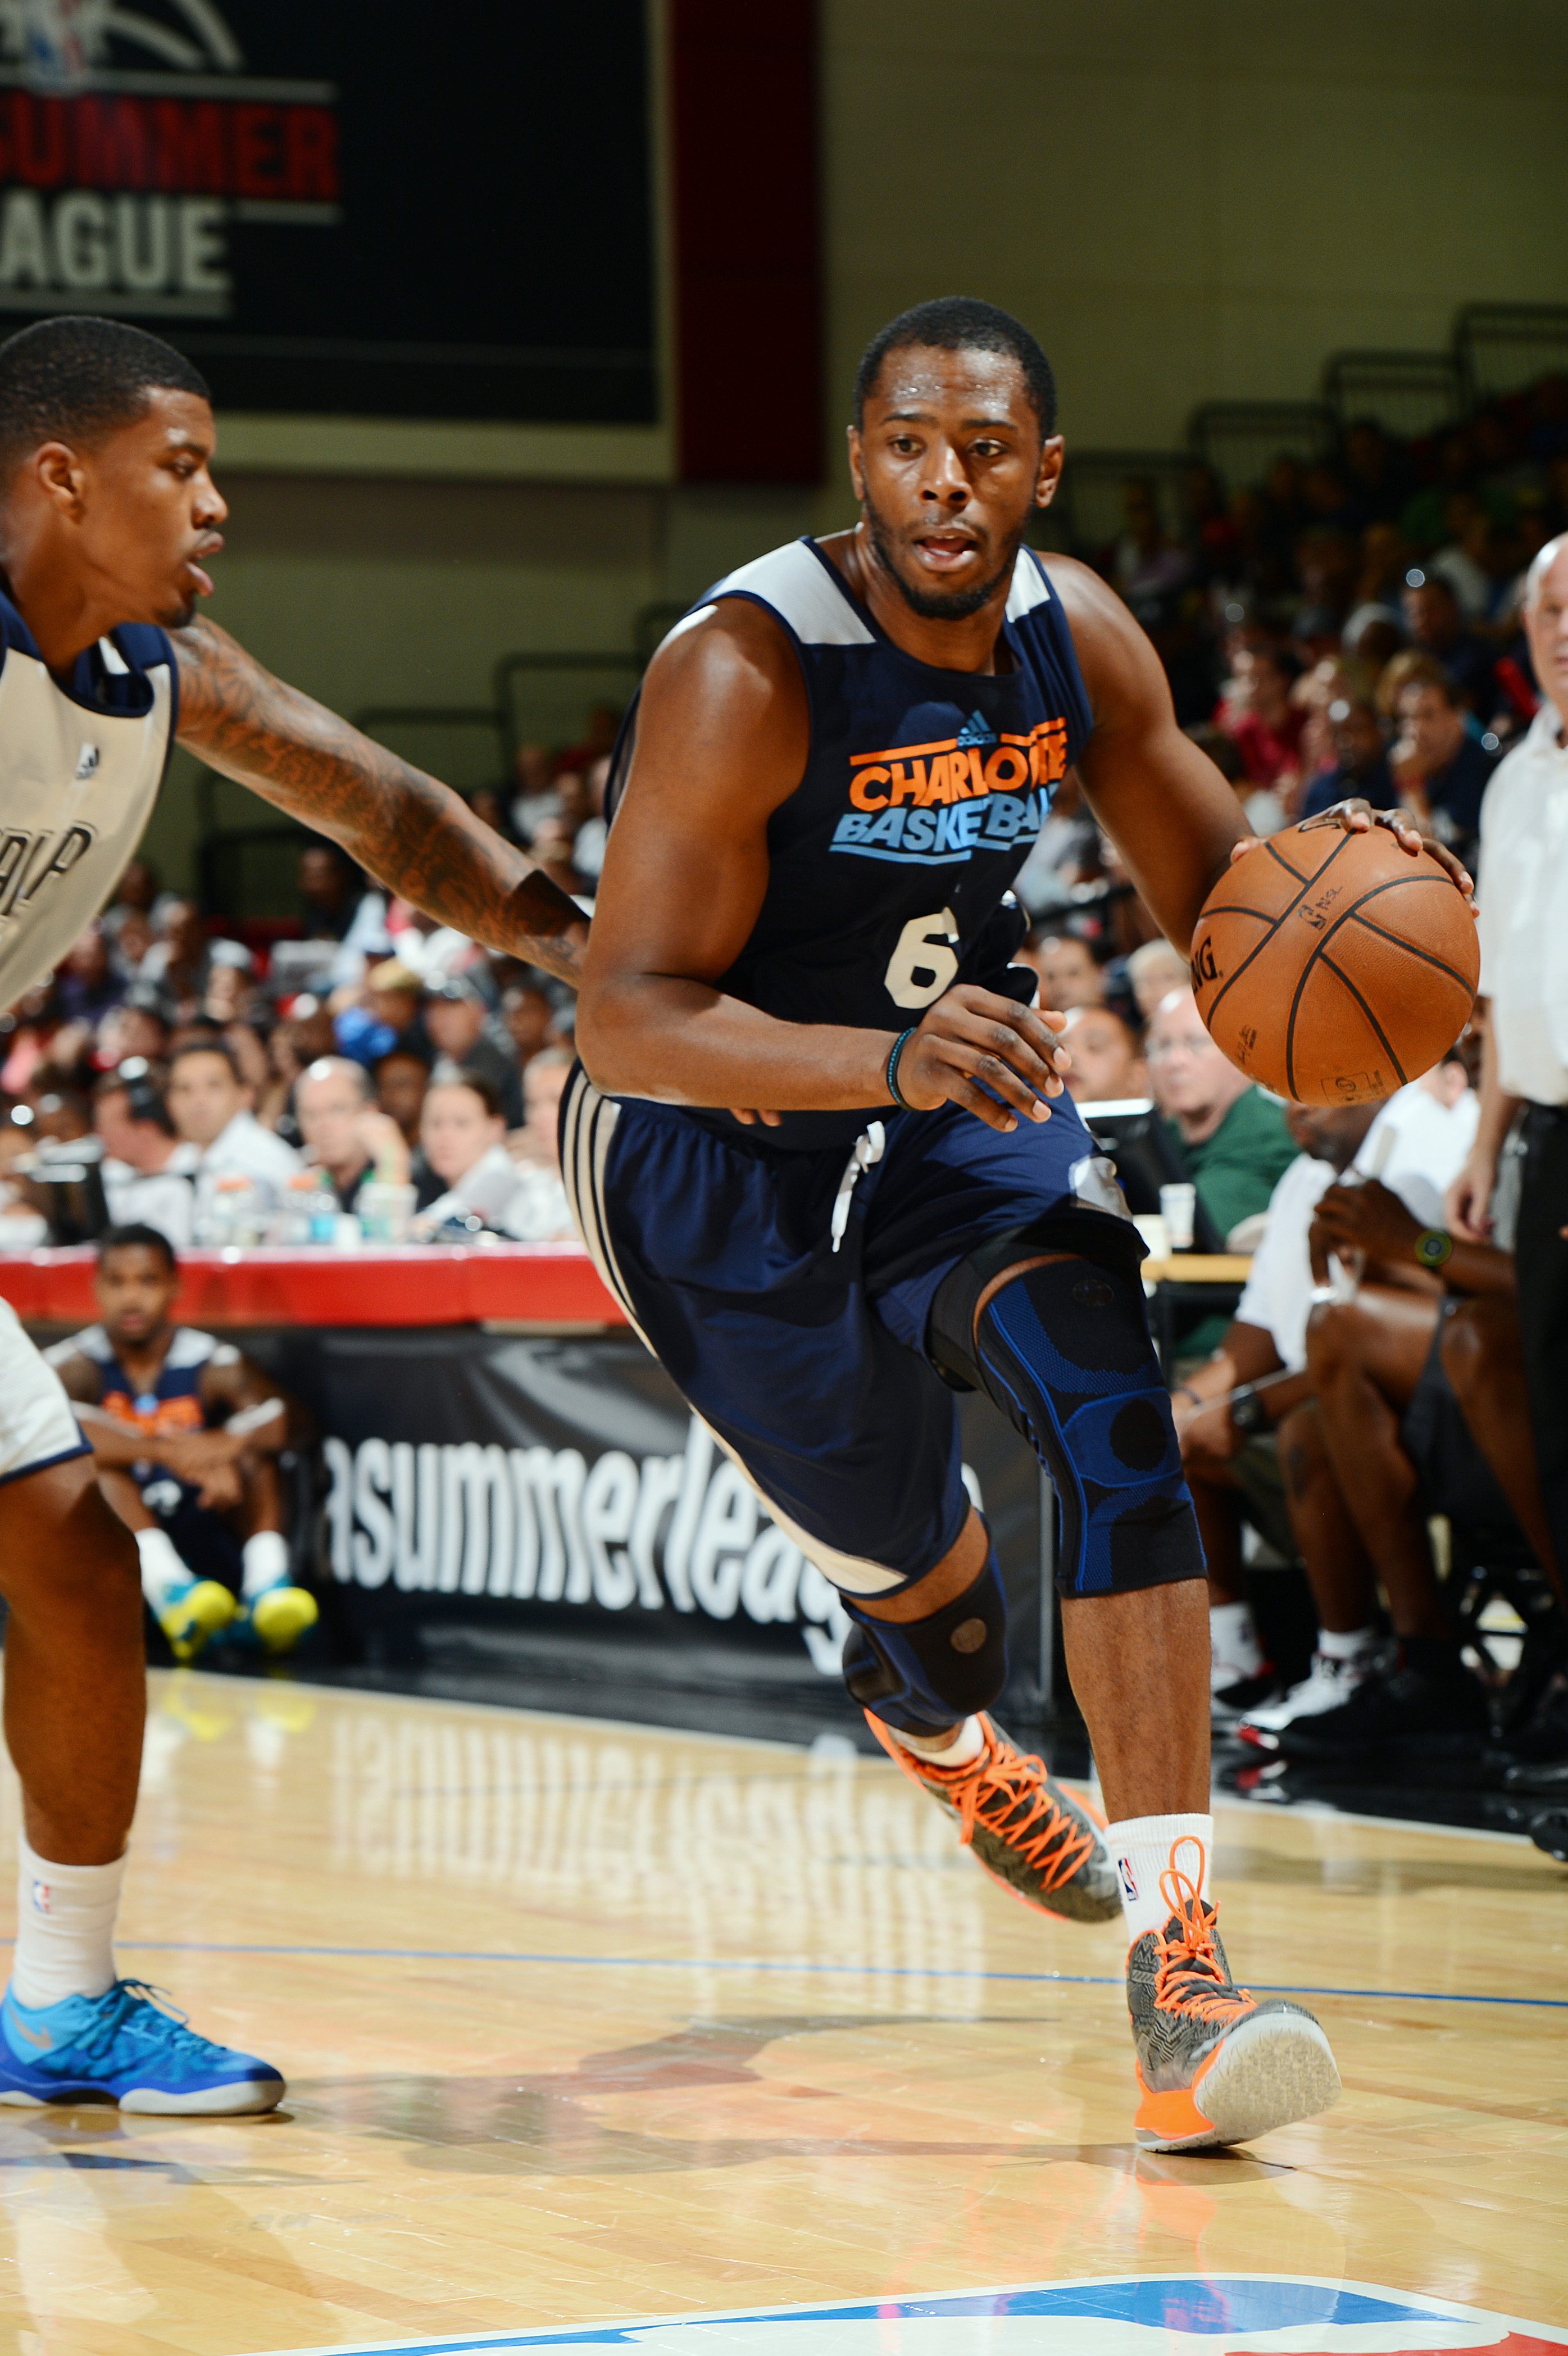 LAS VEGAS, NV - JULY 14: Patrick Ewing Jr. #6 of the Charlotte Bobcats drives against the Dallas Mavericks during NBA Summer League on July 14, 2013 at the Cox Pavilion in Las Vegas, Nevada. (Photo by Garrett W. Ellwood/NBAE via Getty Images)